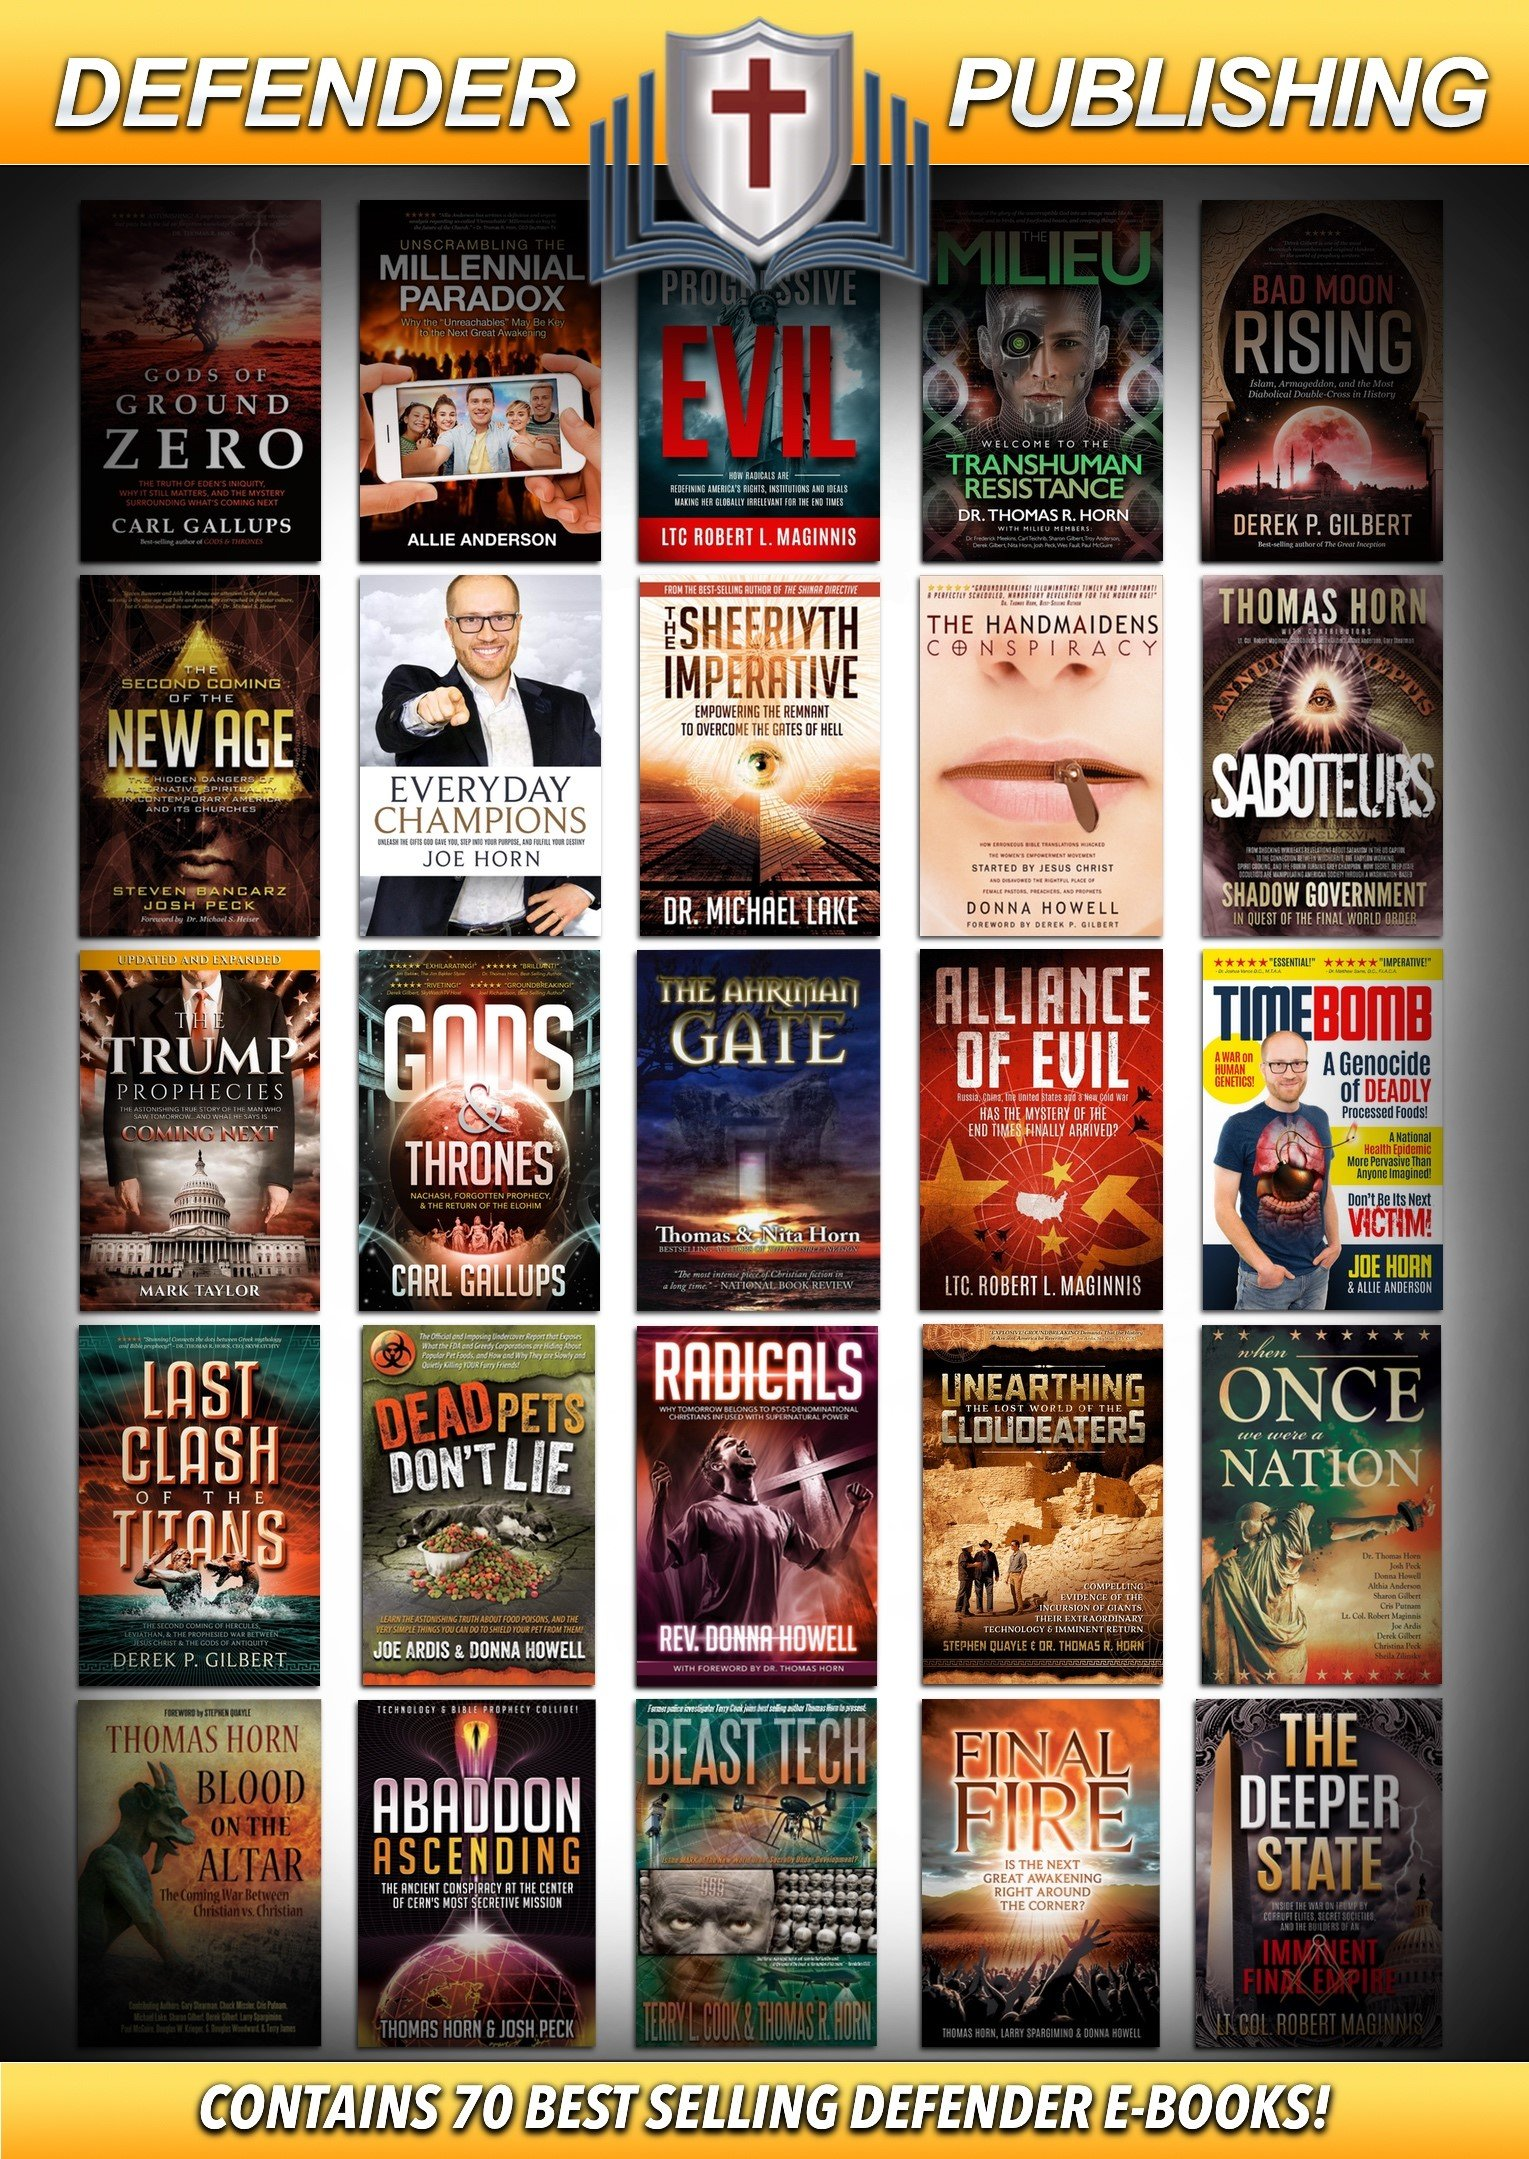 FREE!!!   GET DOZENS OF FREE BOOKS TO READ AND VIDEOS TO WATCH WHILE SHELTERING IN PLACE!